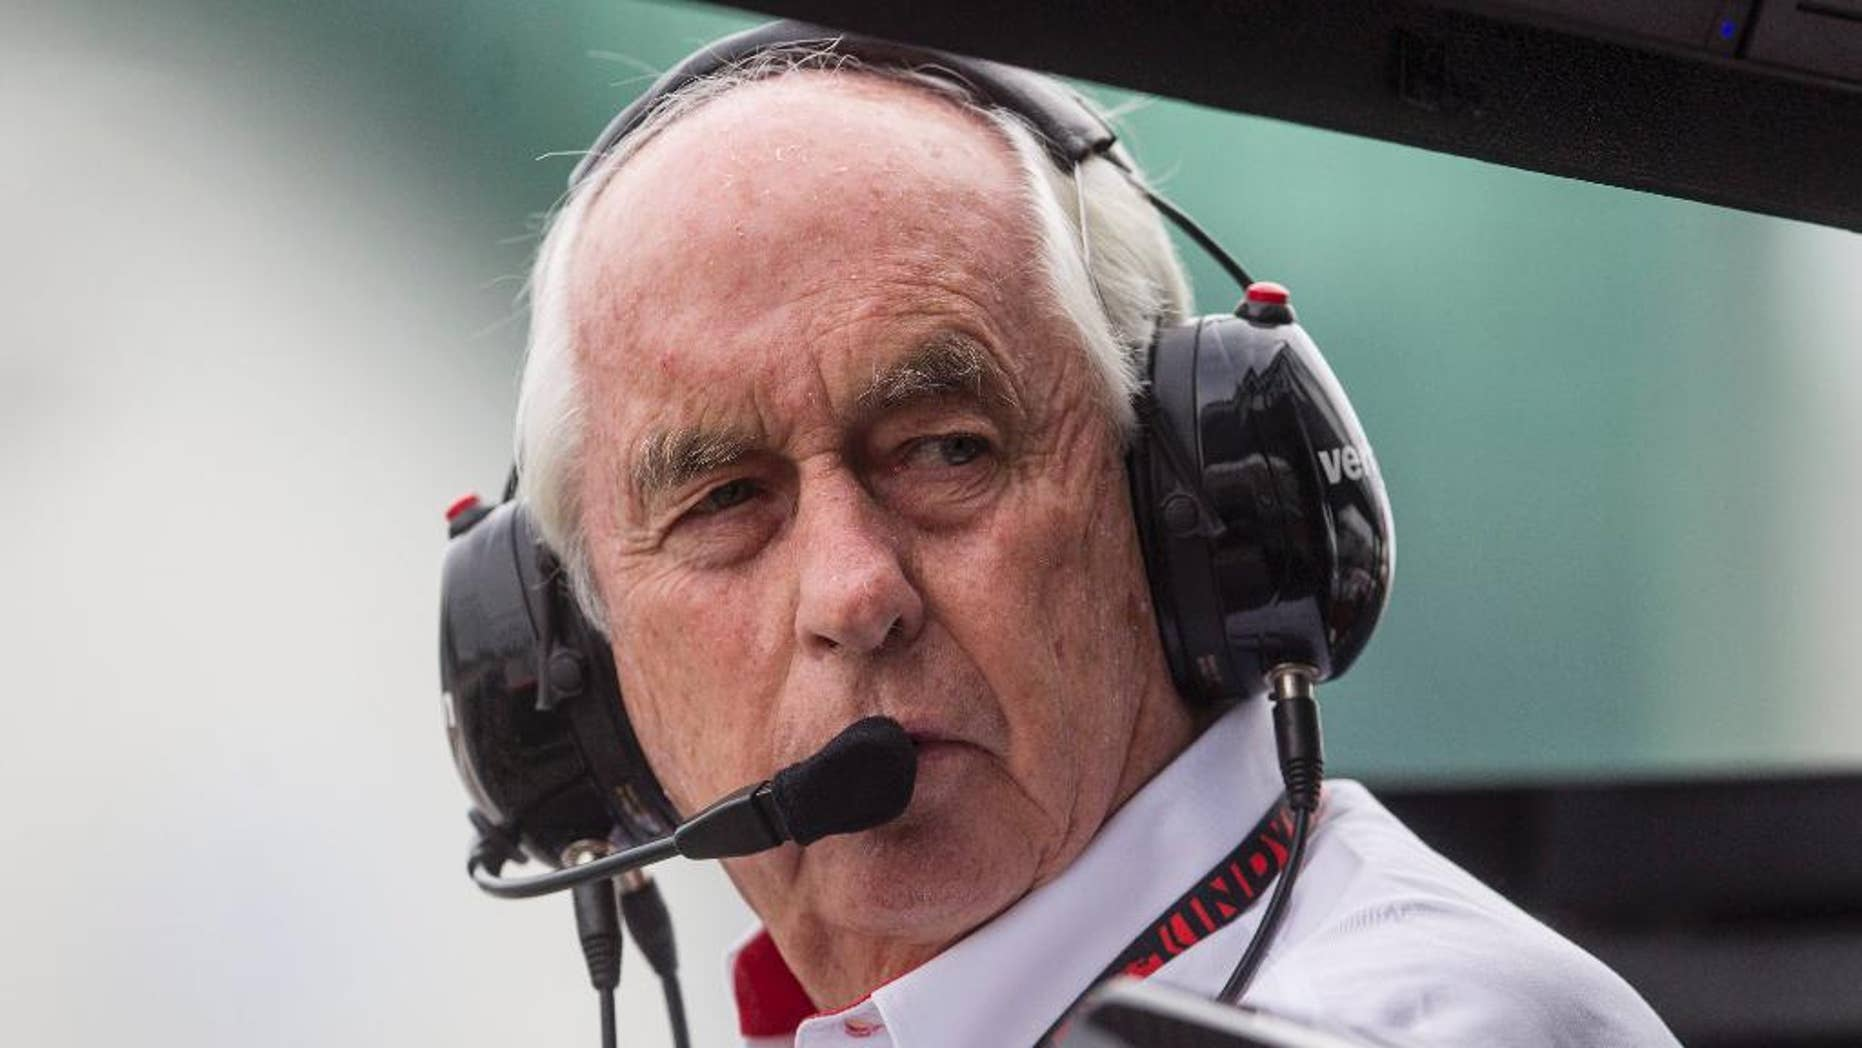 Roger Penske, owner of Team Penske, stands in the pits during a qualifying session for the IndyCar auto race in Toronto on Saturday, July 19, 2014.  (AP Photo/The Canadian Press, Chris Young)